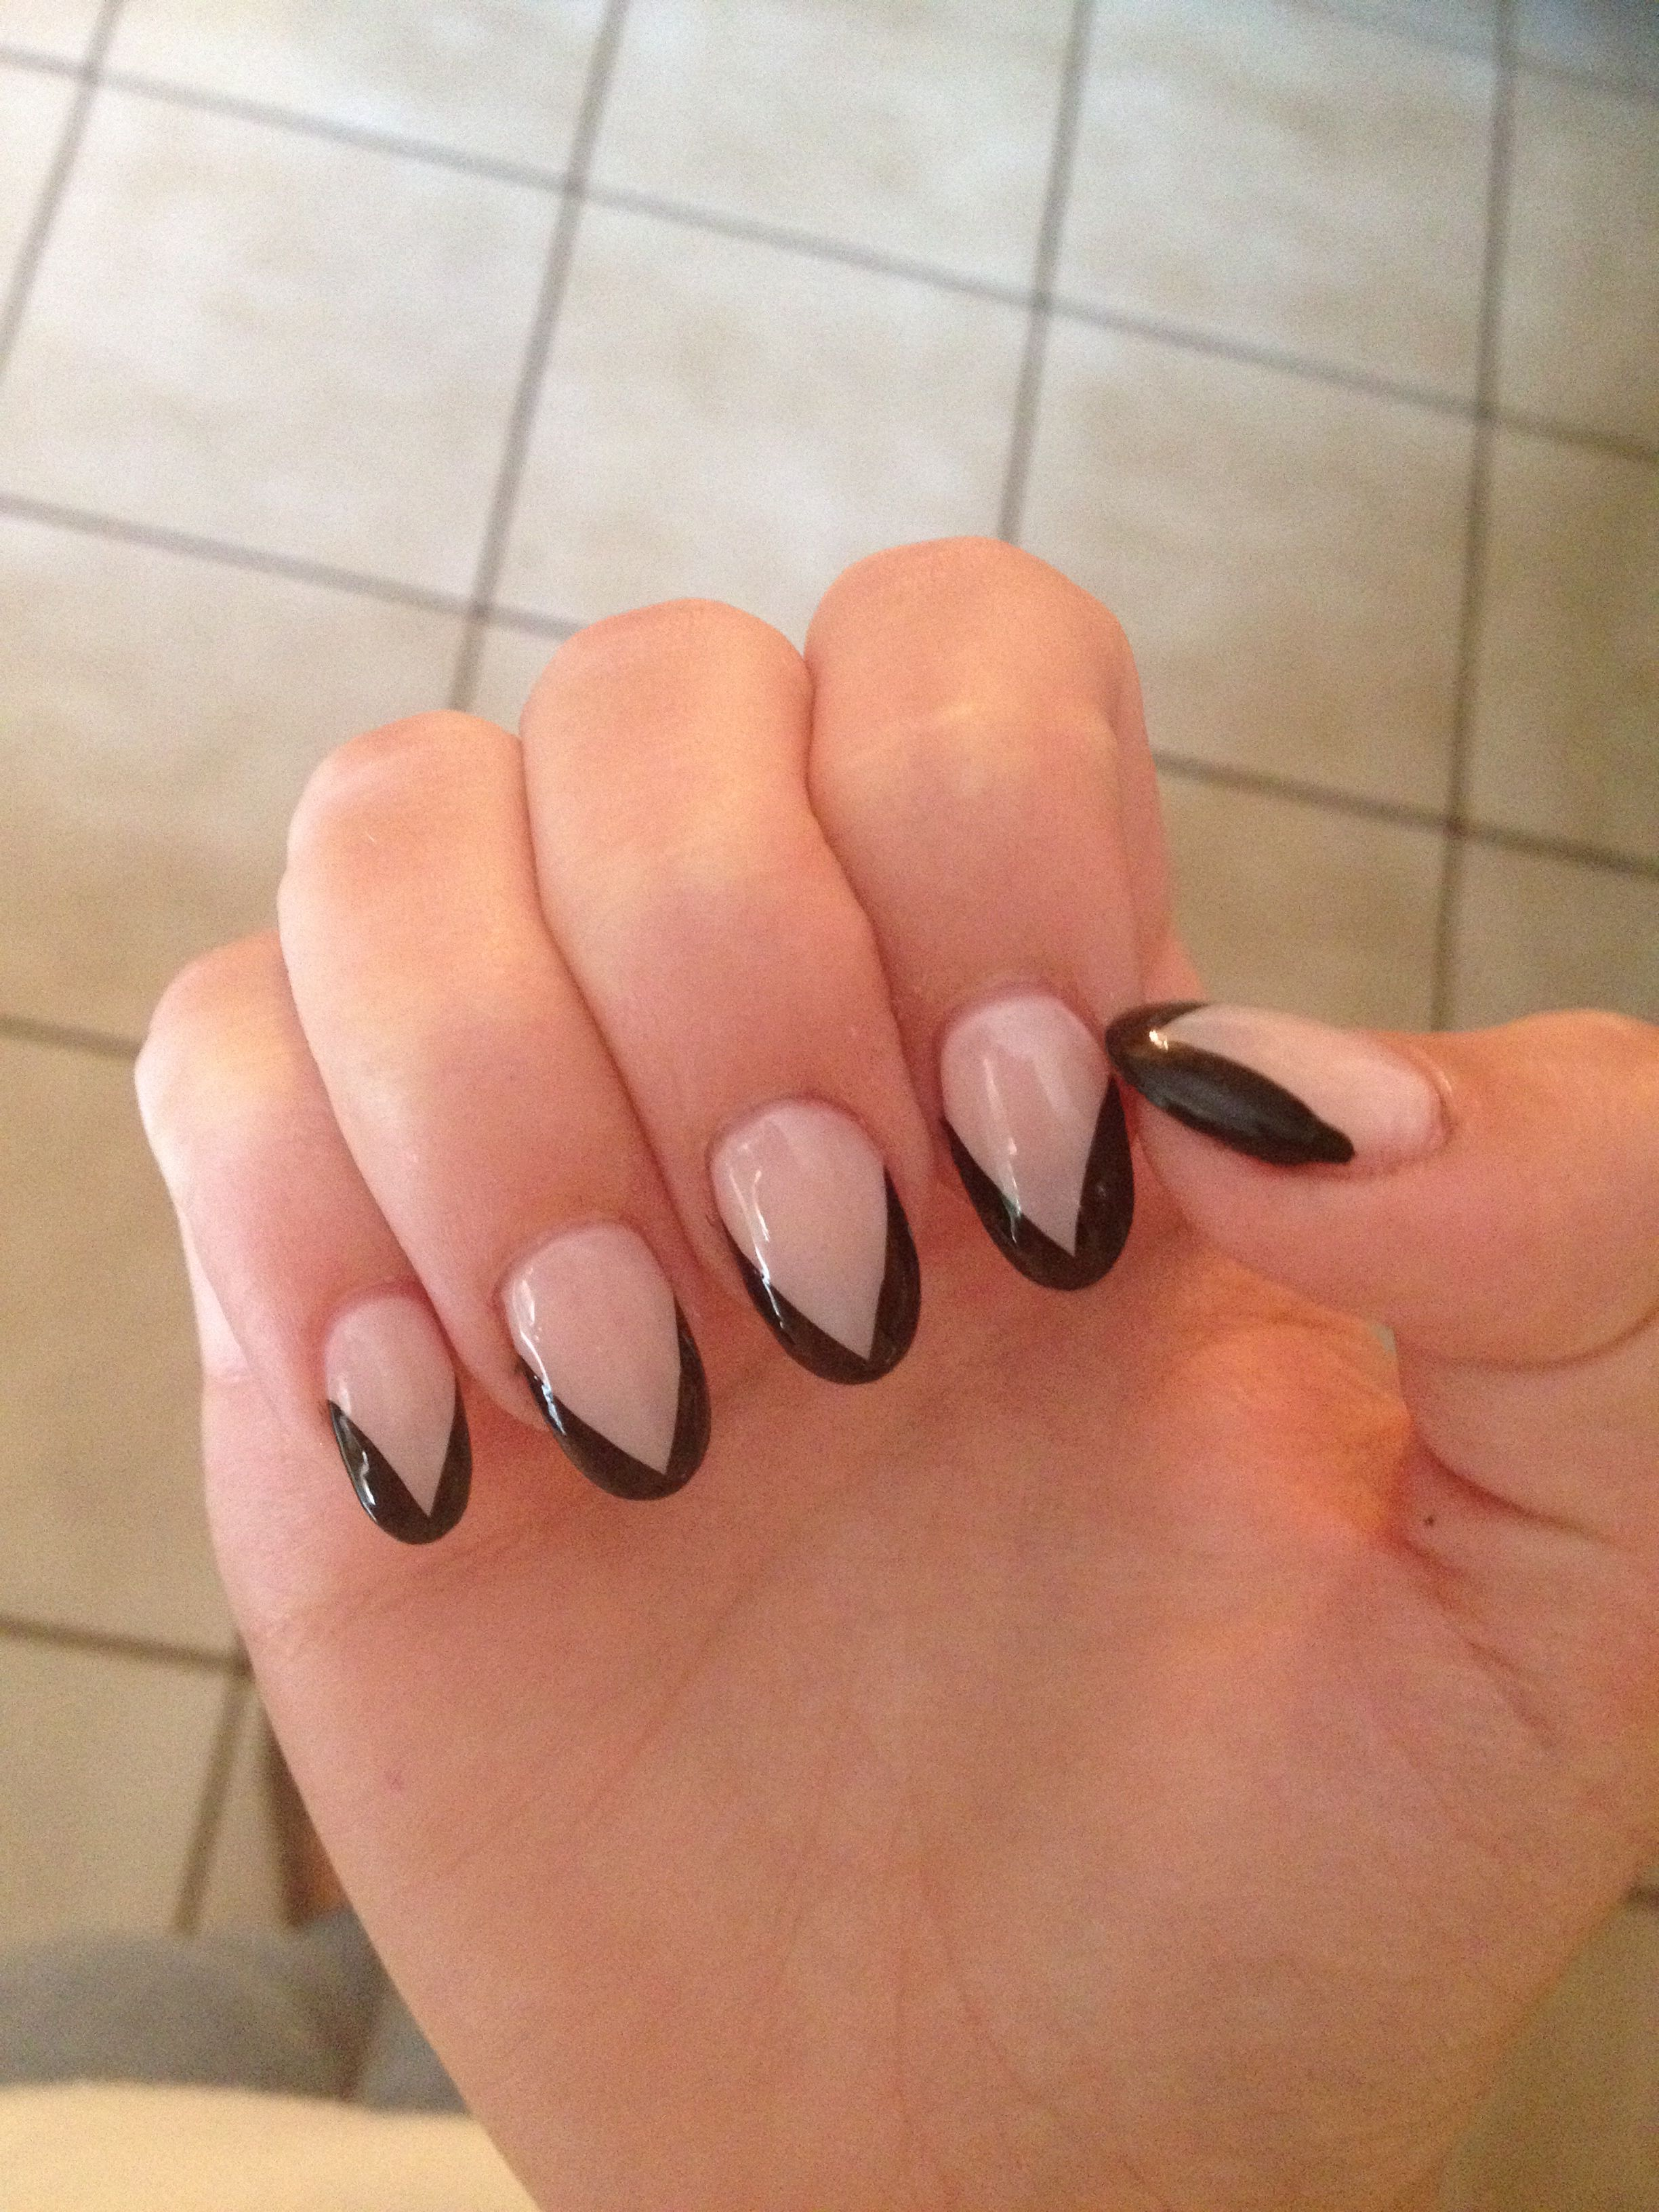 Black French Tip Almond Acrylics Nails Hand Candy Black French Tips